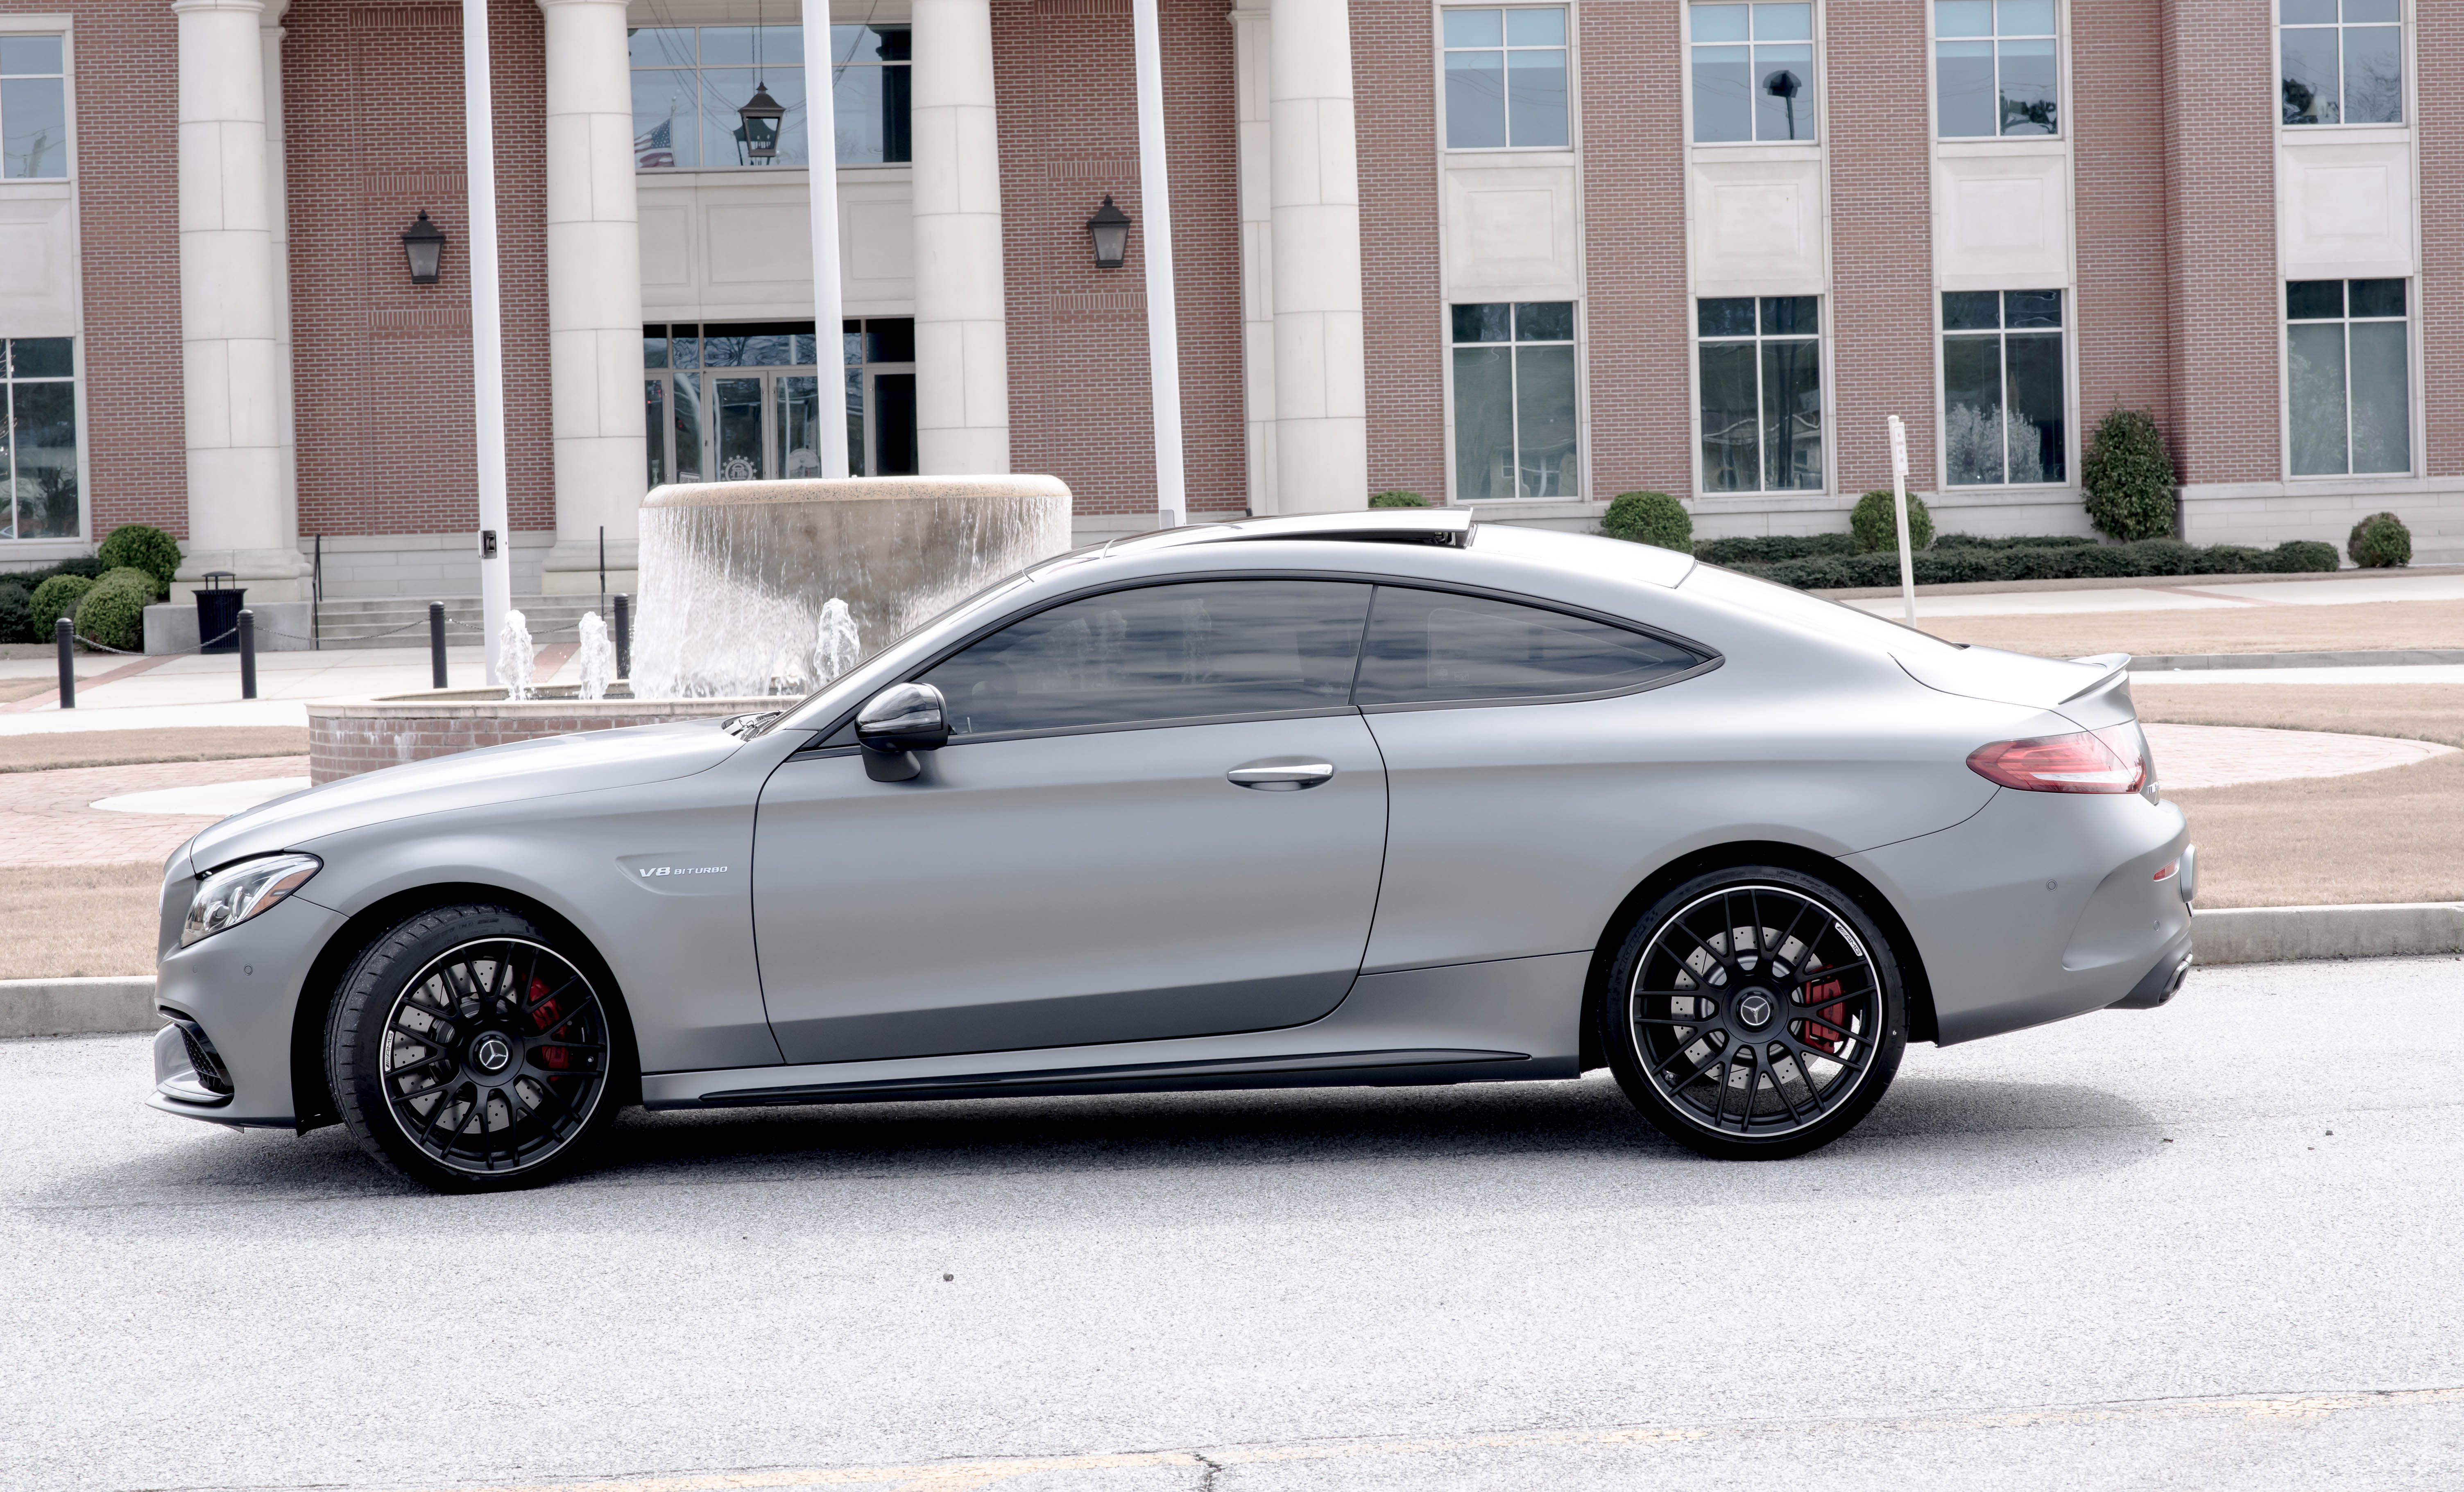 2018 Mercedes Benz Amg C63 S Coupe Speed Beautiful For Rockstar